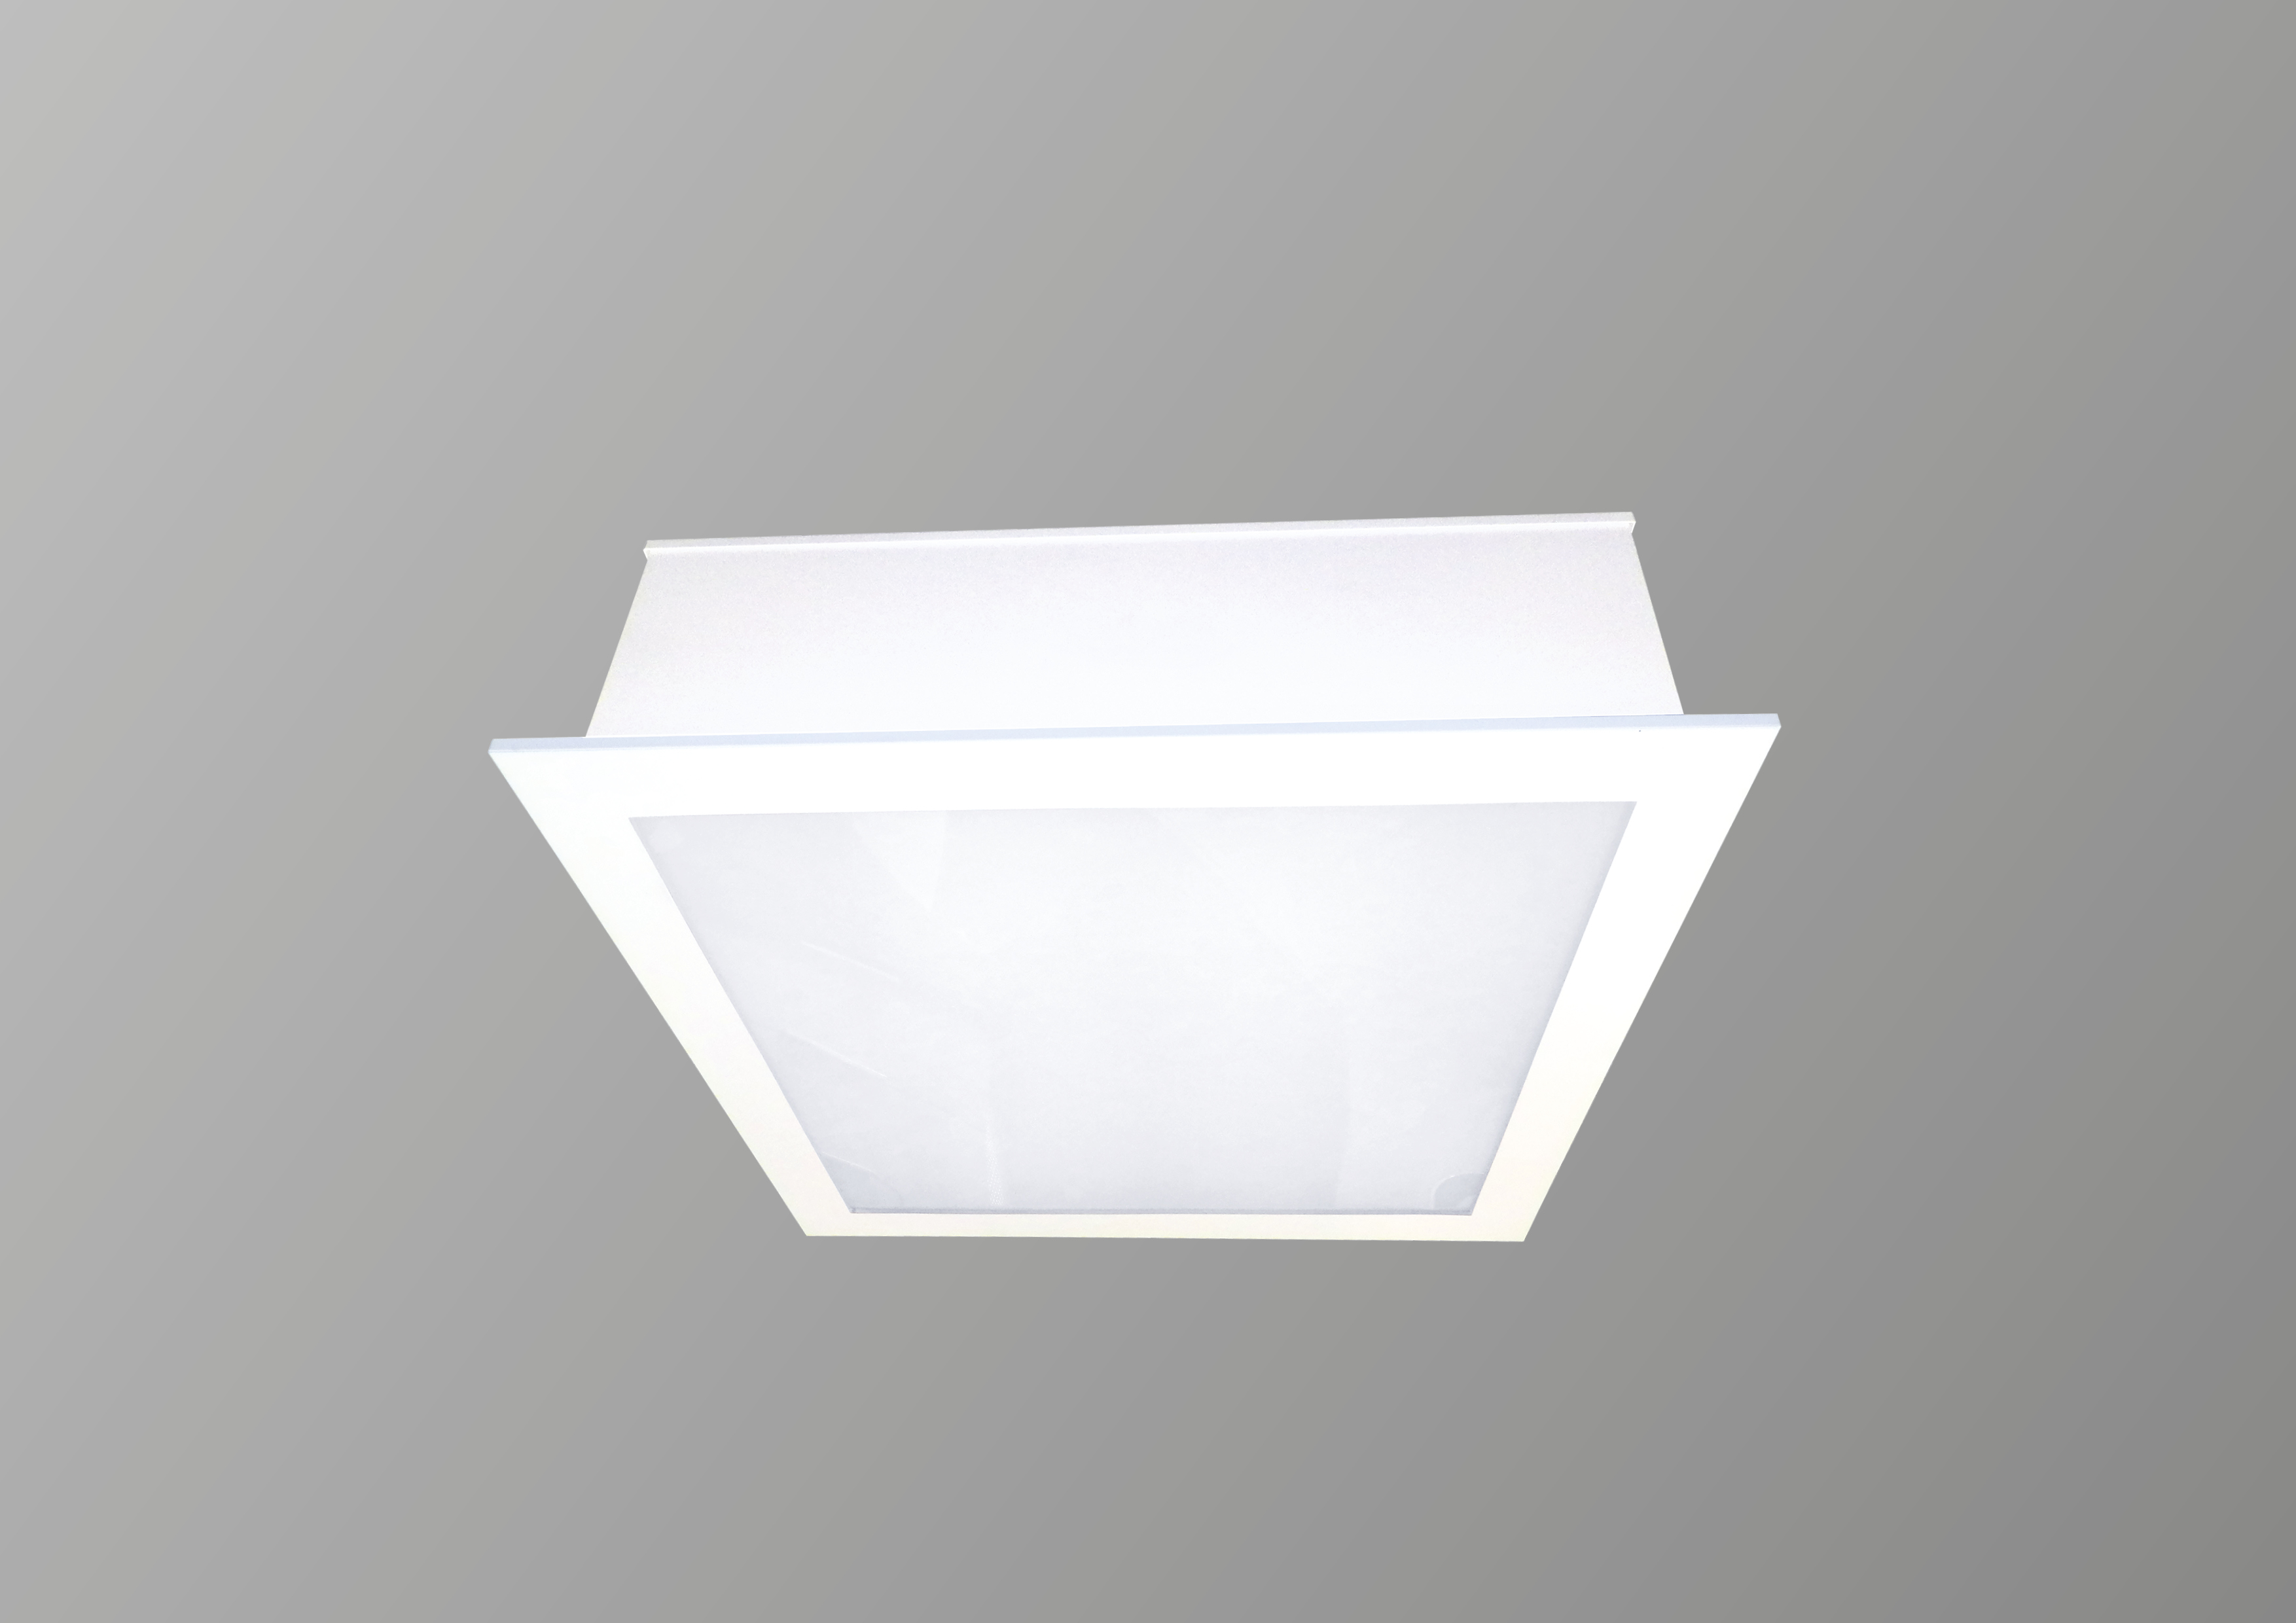 https://contrac-lighting.co.uk/wp-content/uploads/2018/01/CANOPY-REAR-ACCESS-FRONT.jpg